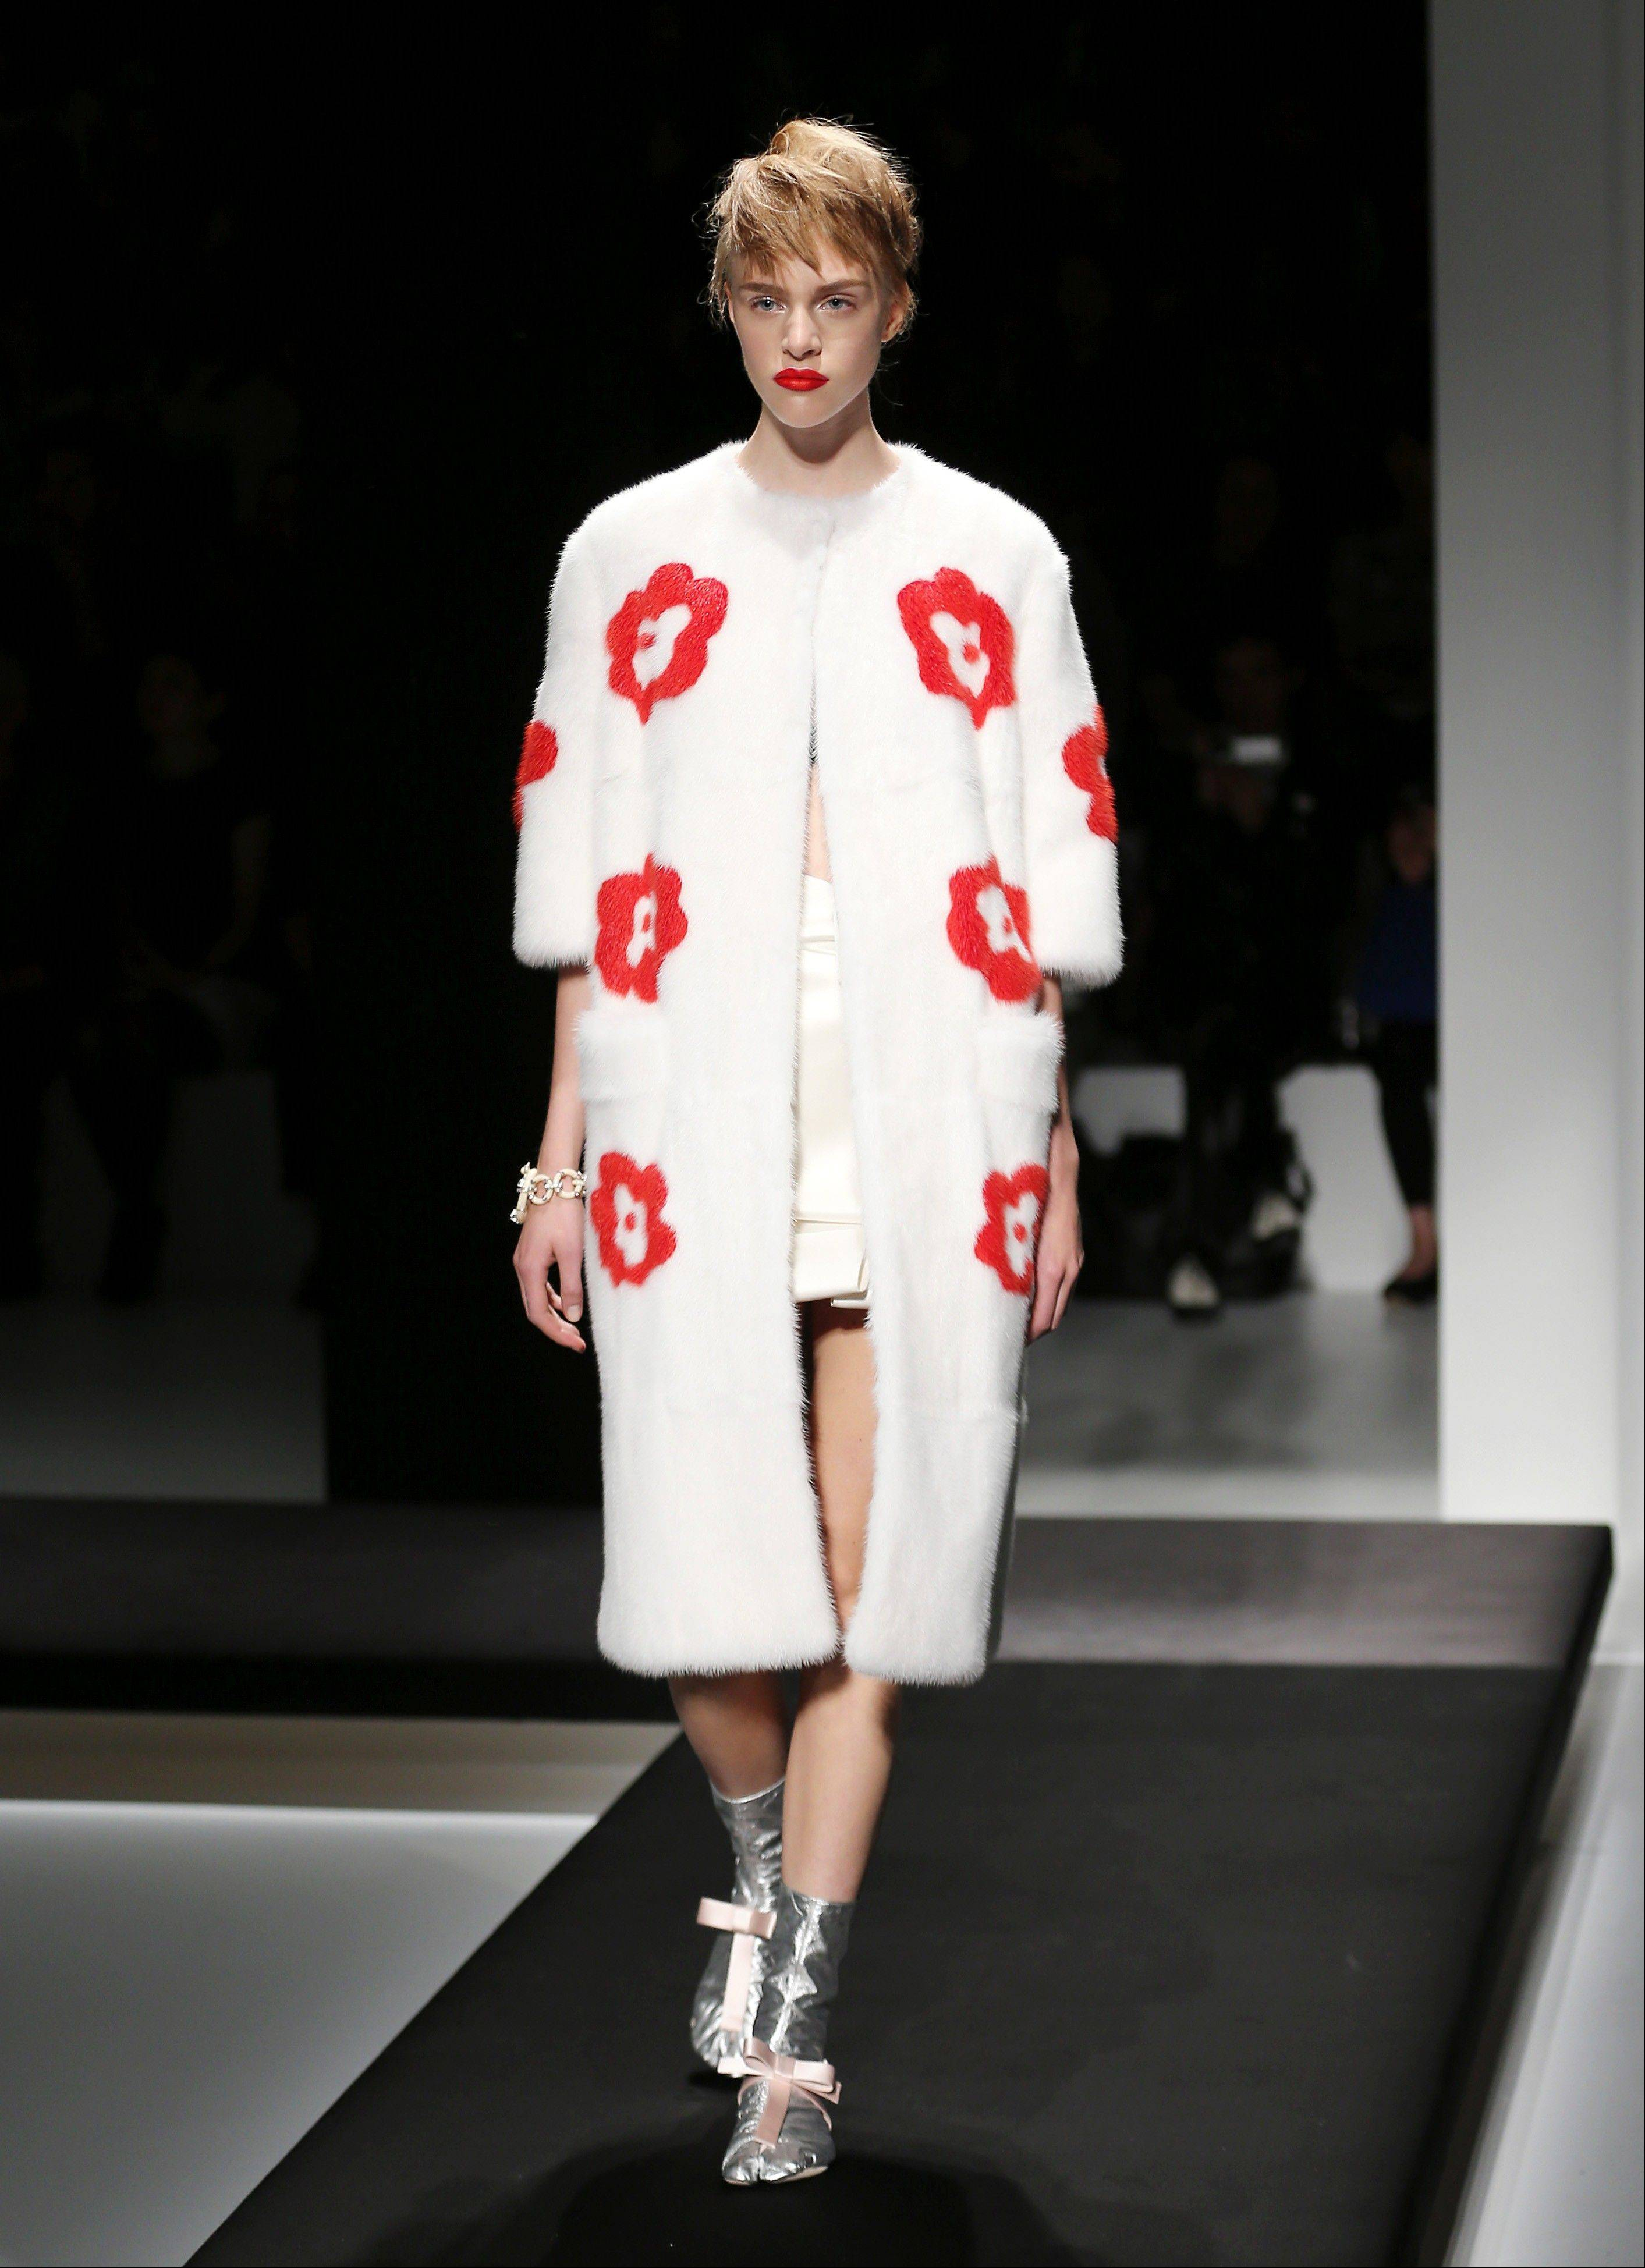 A model wears a floral creation that's part of the Prada Women's Spring-Summer 2013 fashion collection in Milan.